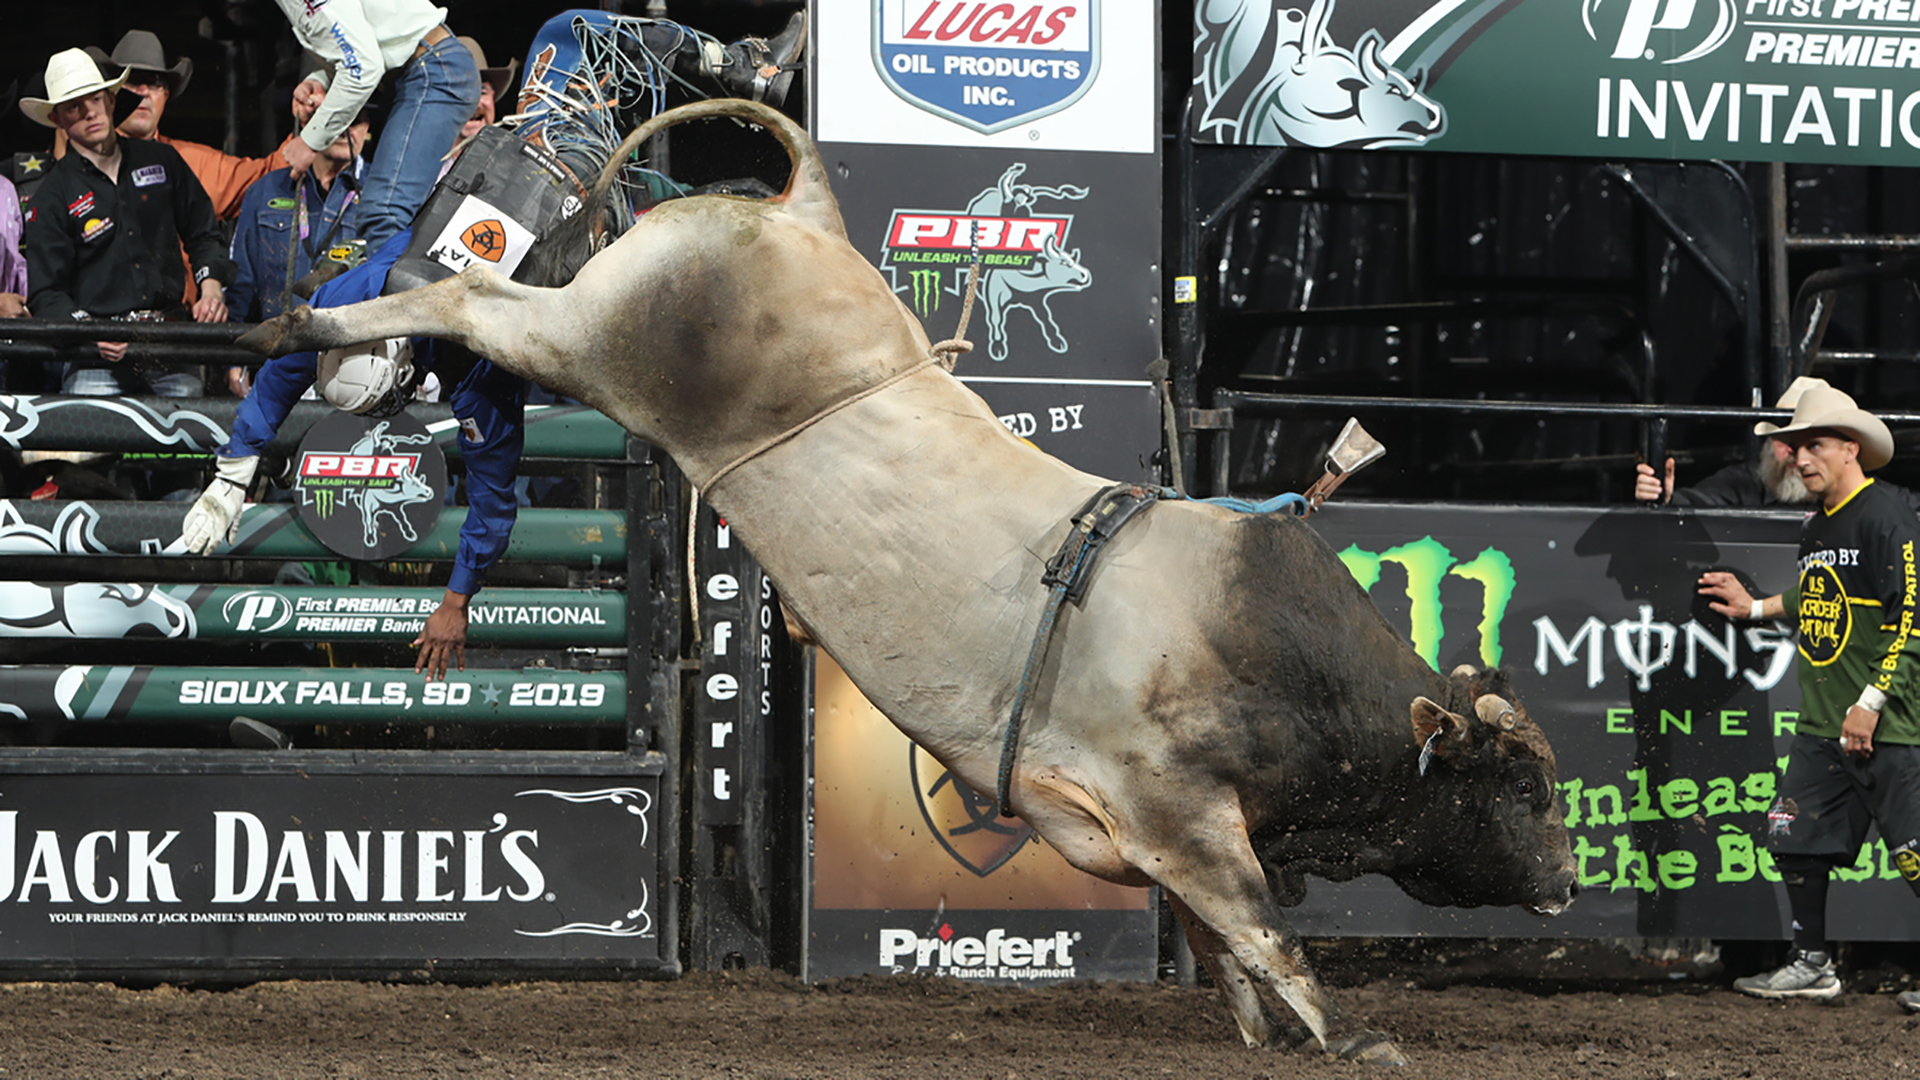 SweetPro's Bruiser earns spot in Sioux Falls championship round